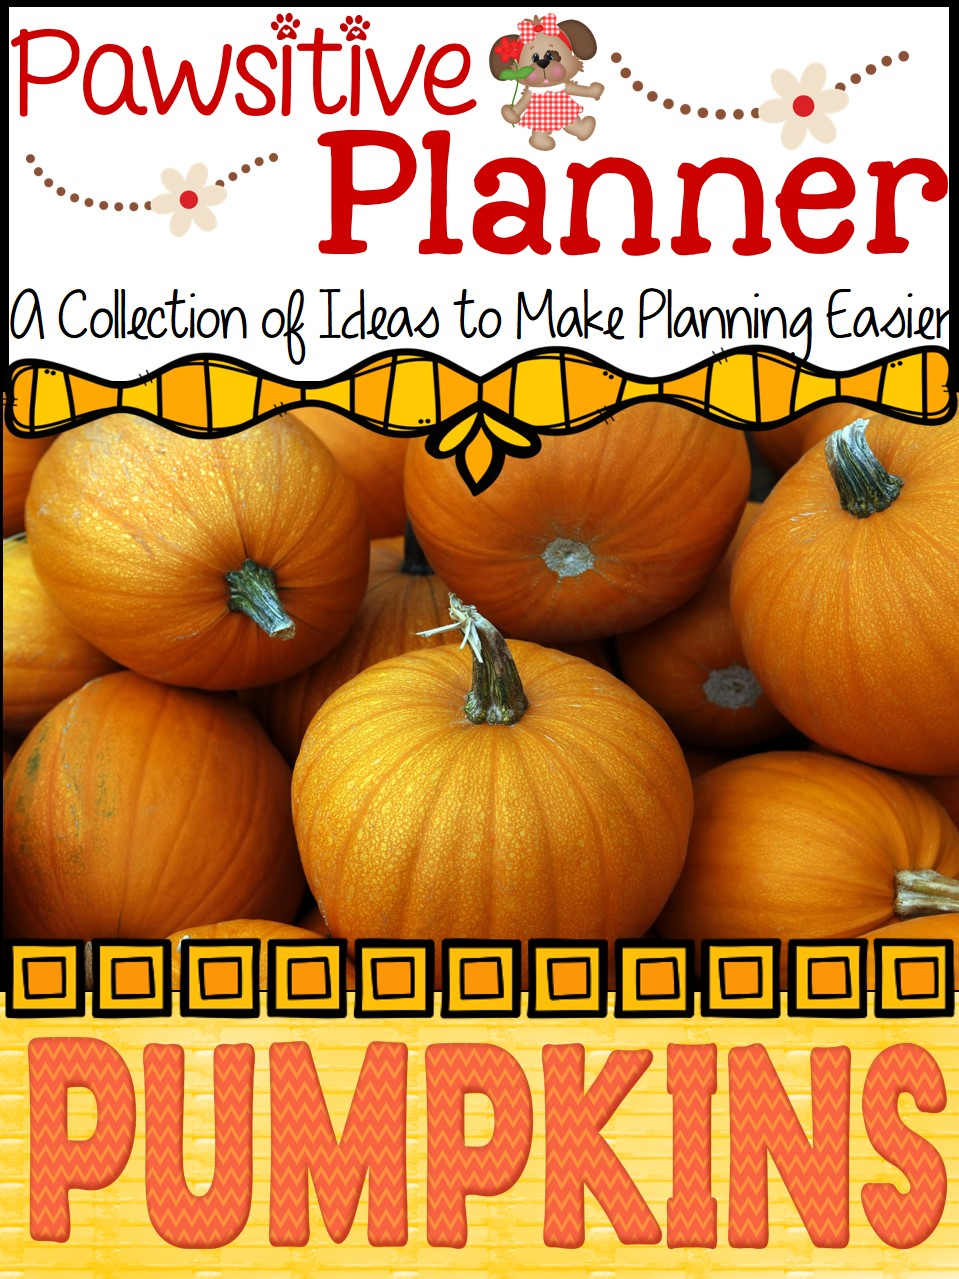 A Pawsitive Planner for Pumpkins